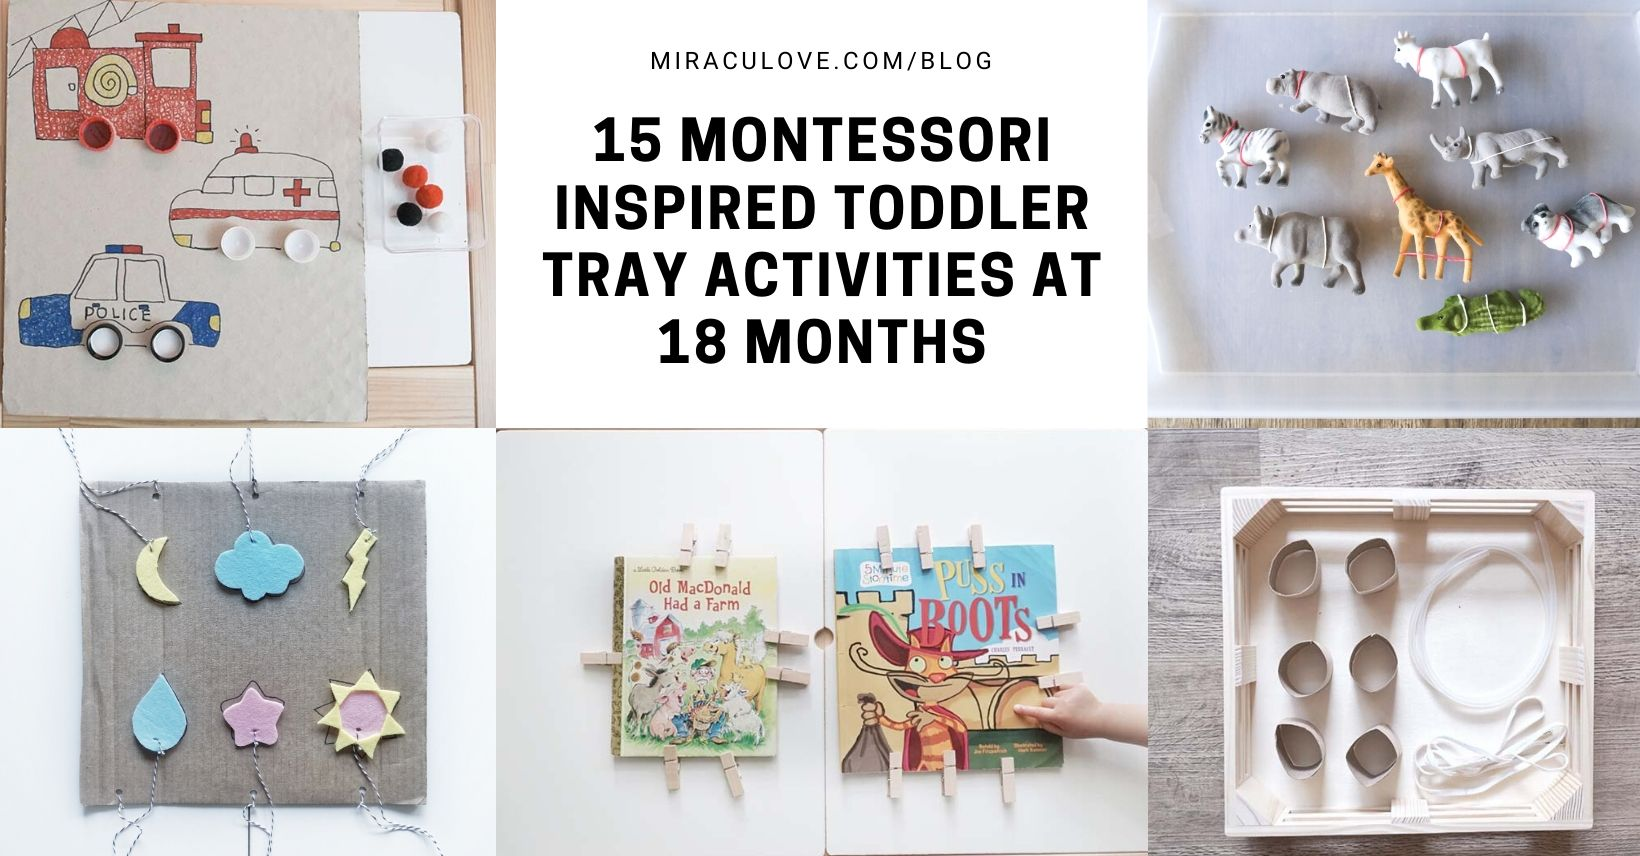 15 Montessori Inspired Toddler Tray Activities at 18 Months